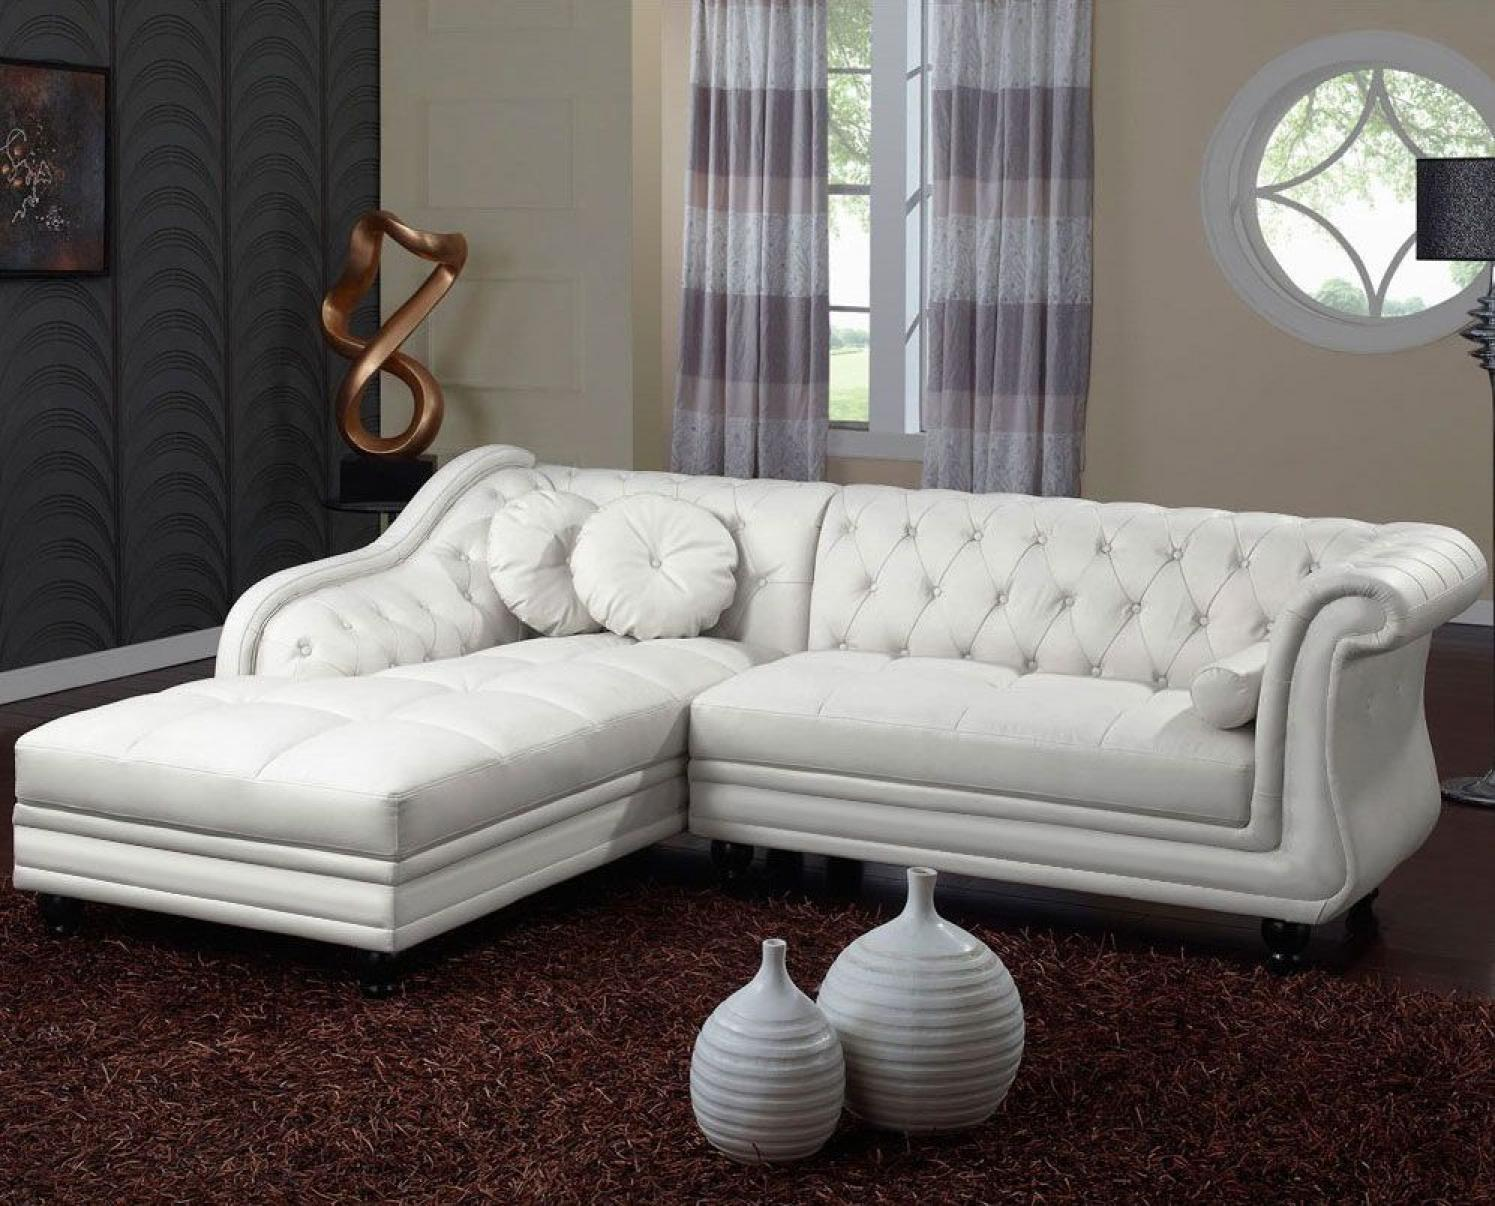 Photos canap chesterfield cuir blanc - Canape chesterfield blanc ...